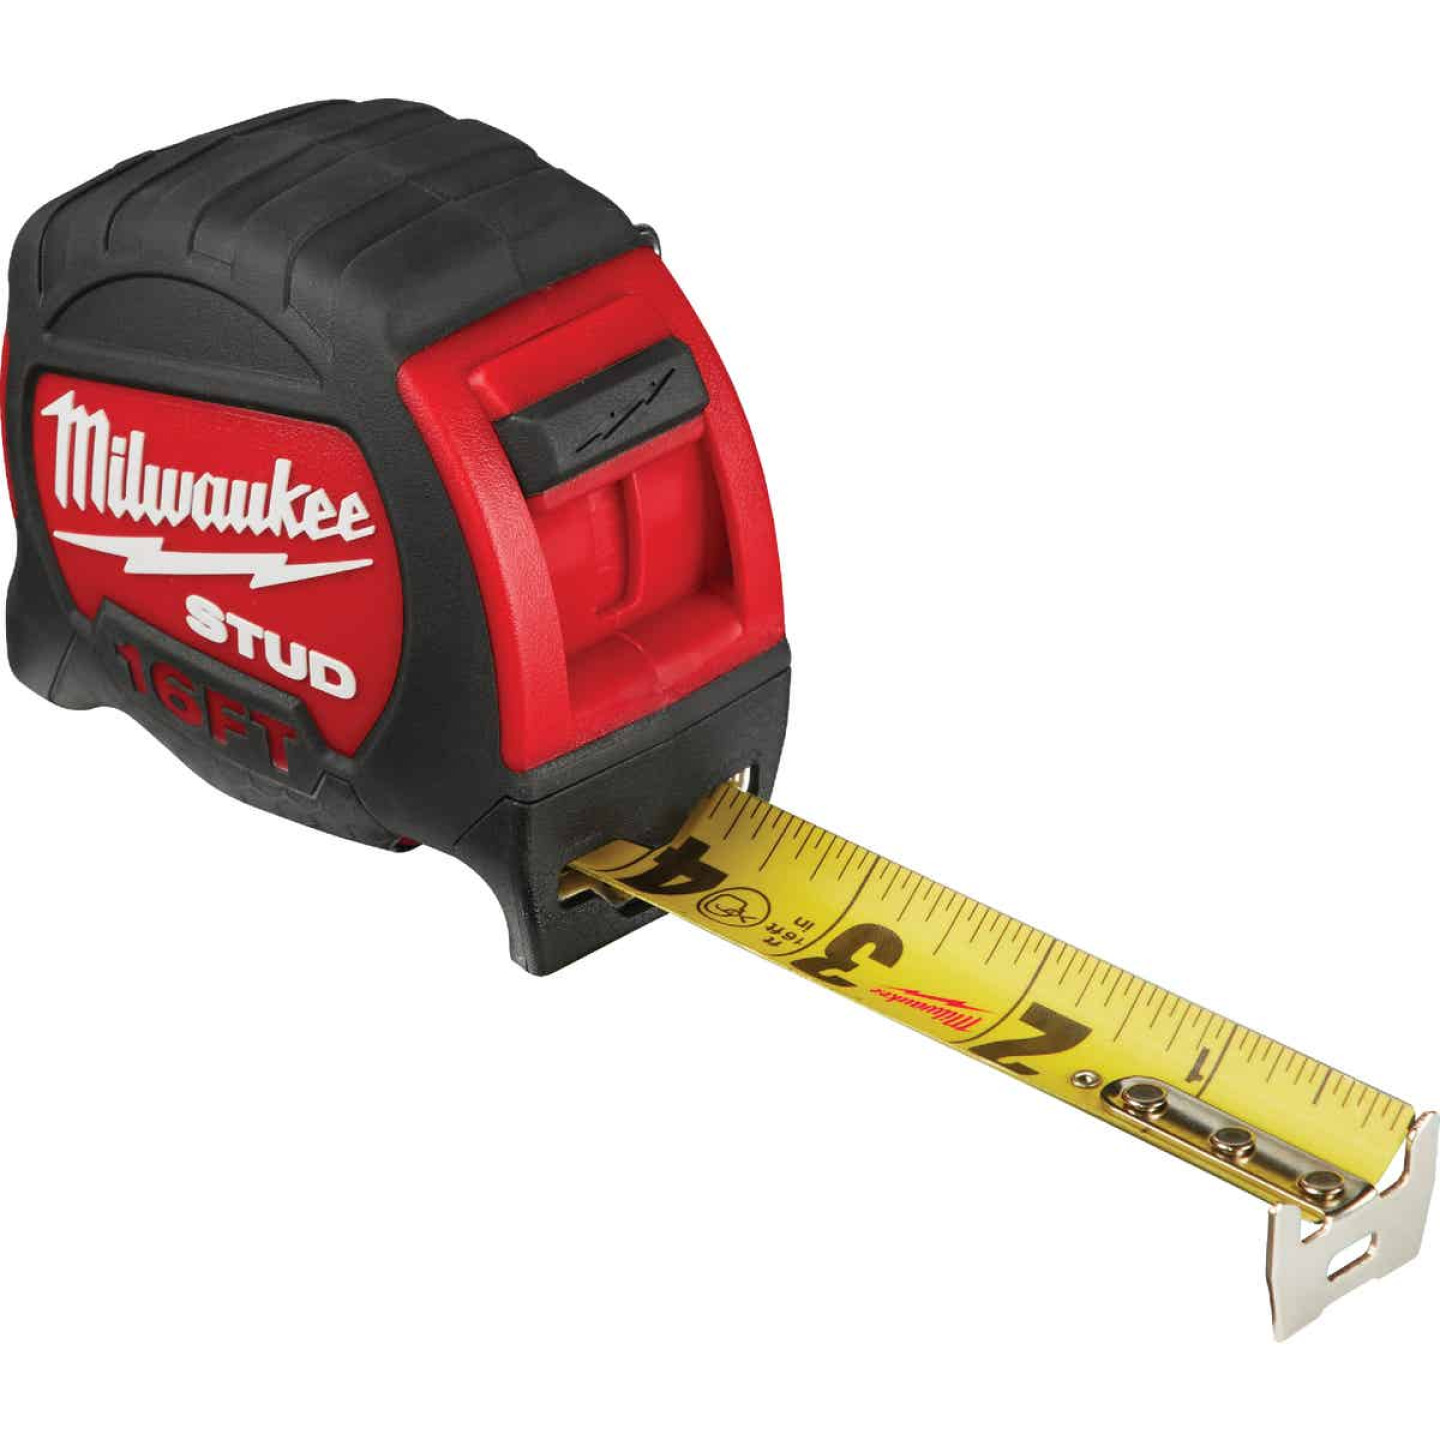 Milwaukee STUD 16 Ft. Tape Measure Image 2